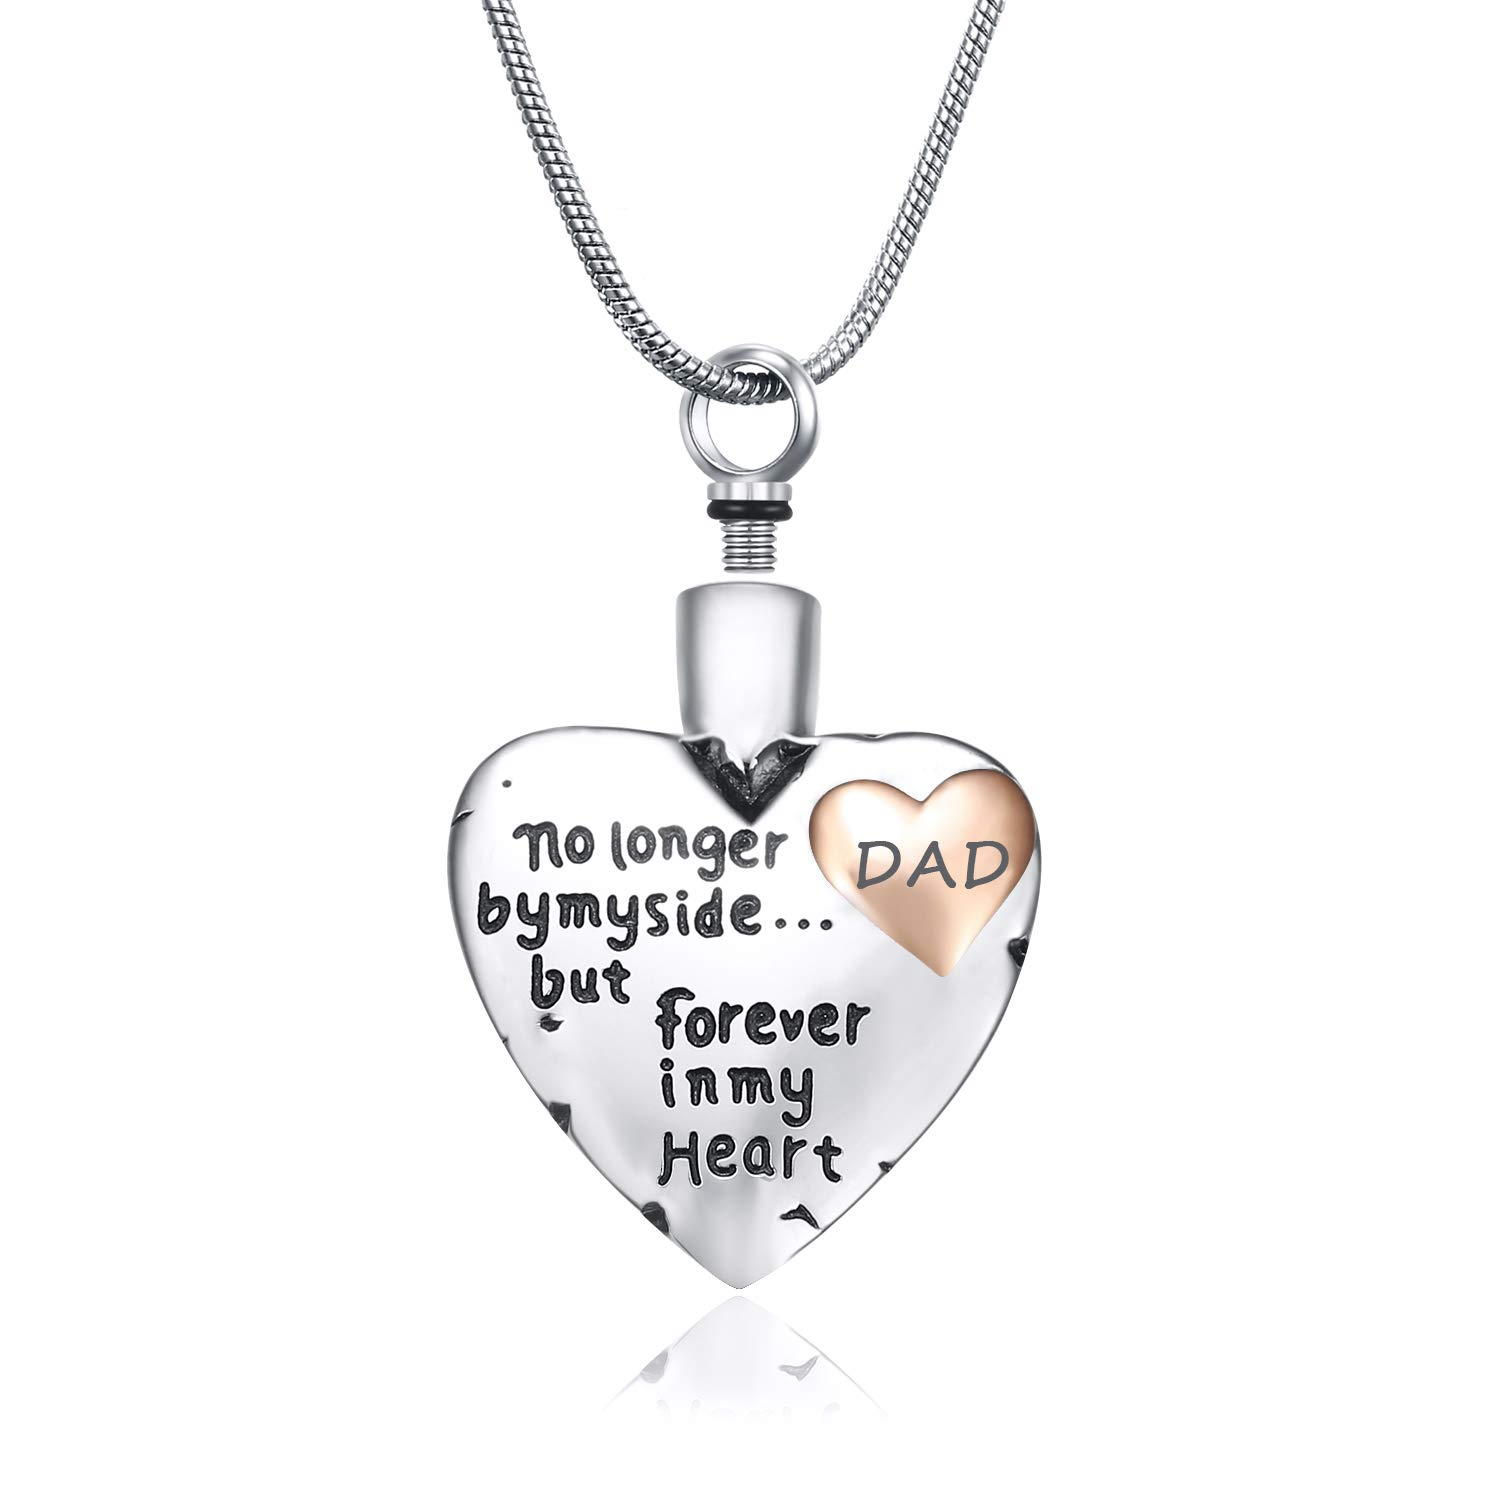 Mermotial Ashes Necklace for Mom Dad Son No Longer by My Side,Forvever in My Heart